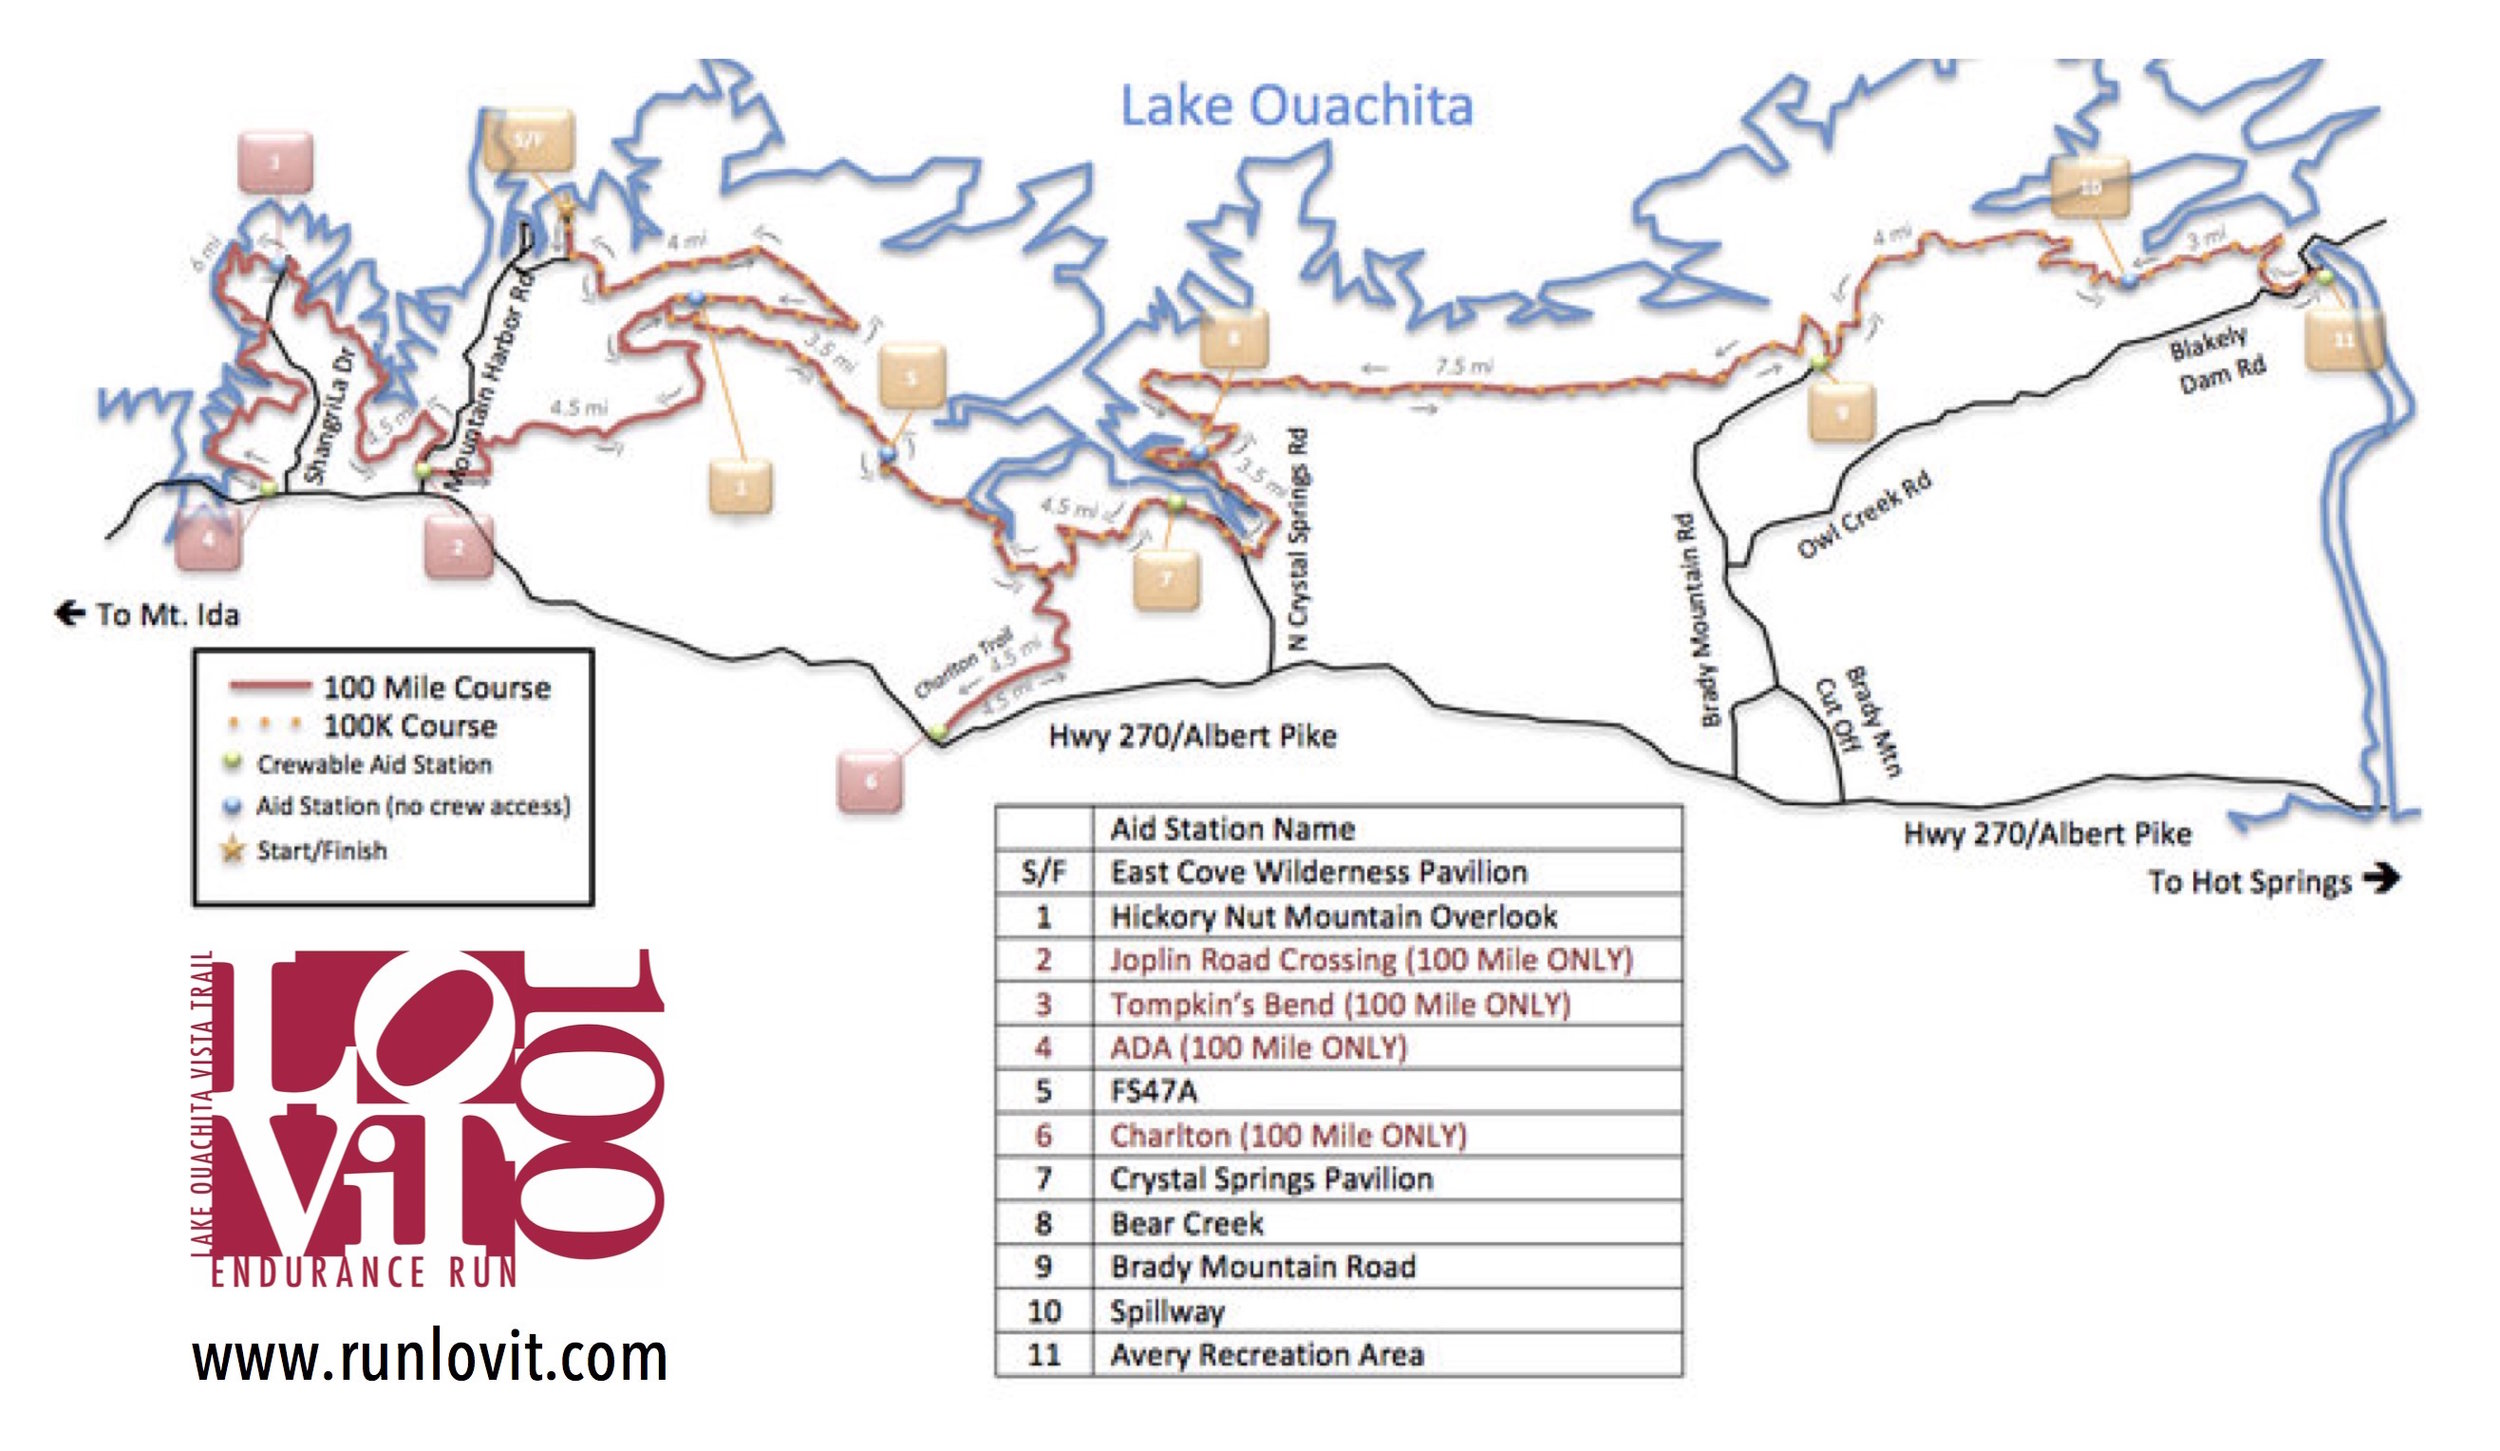 2018 course map with logo.jpg